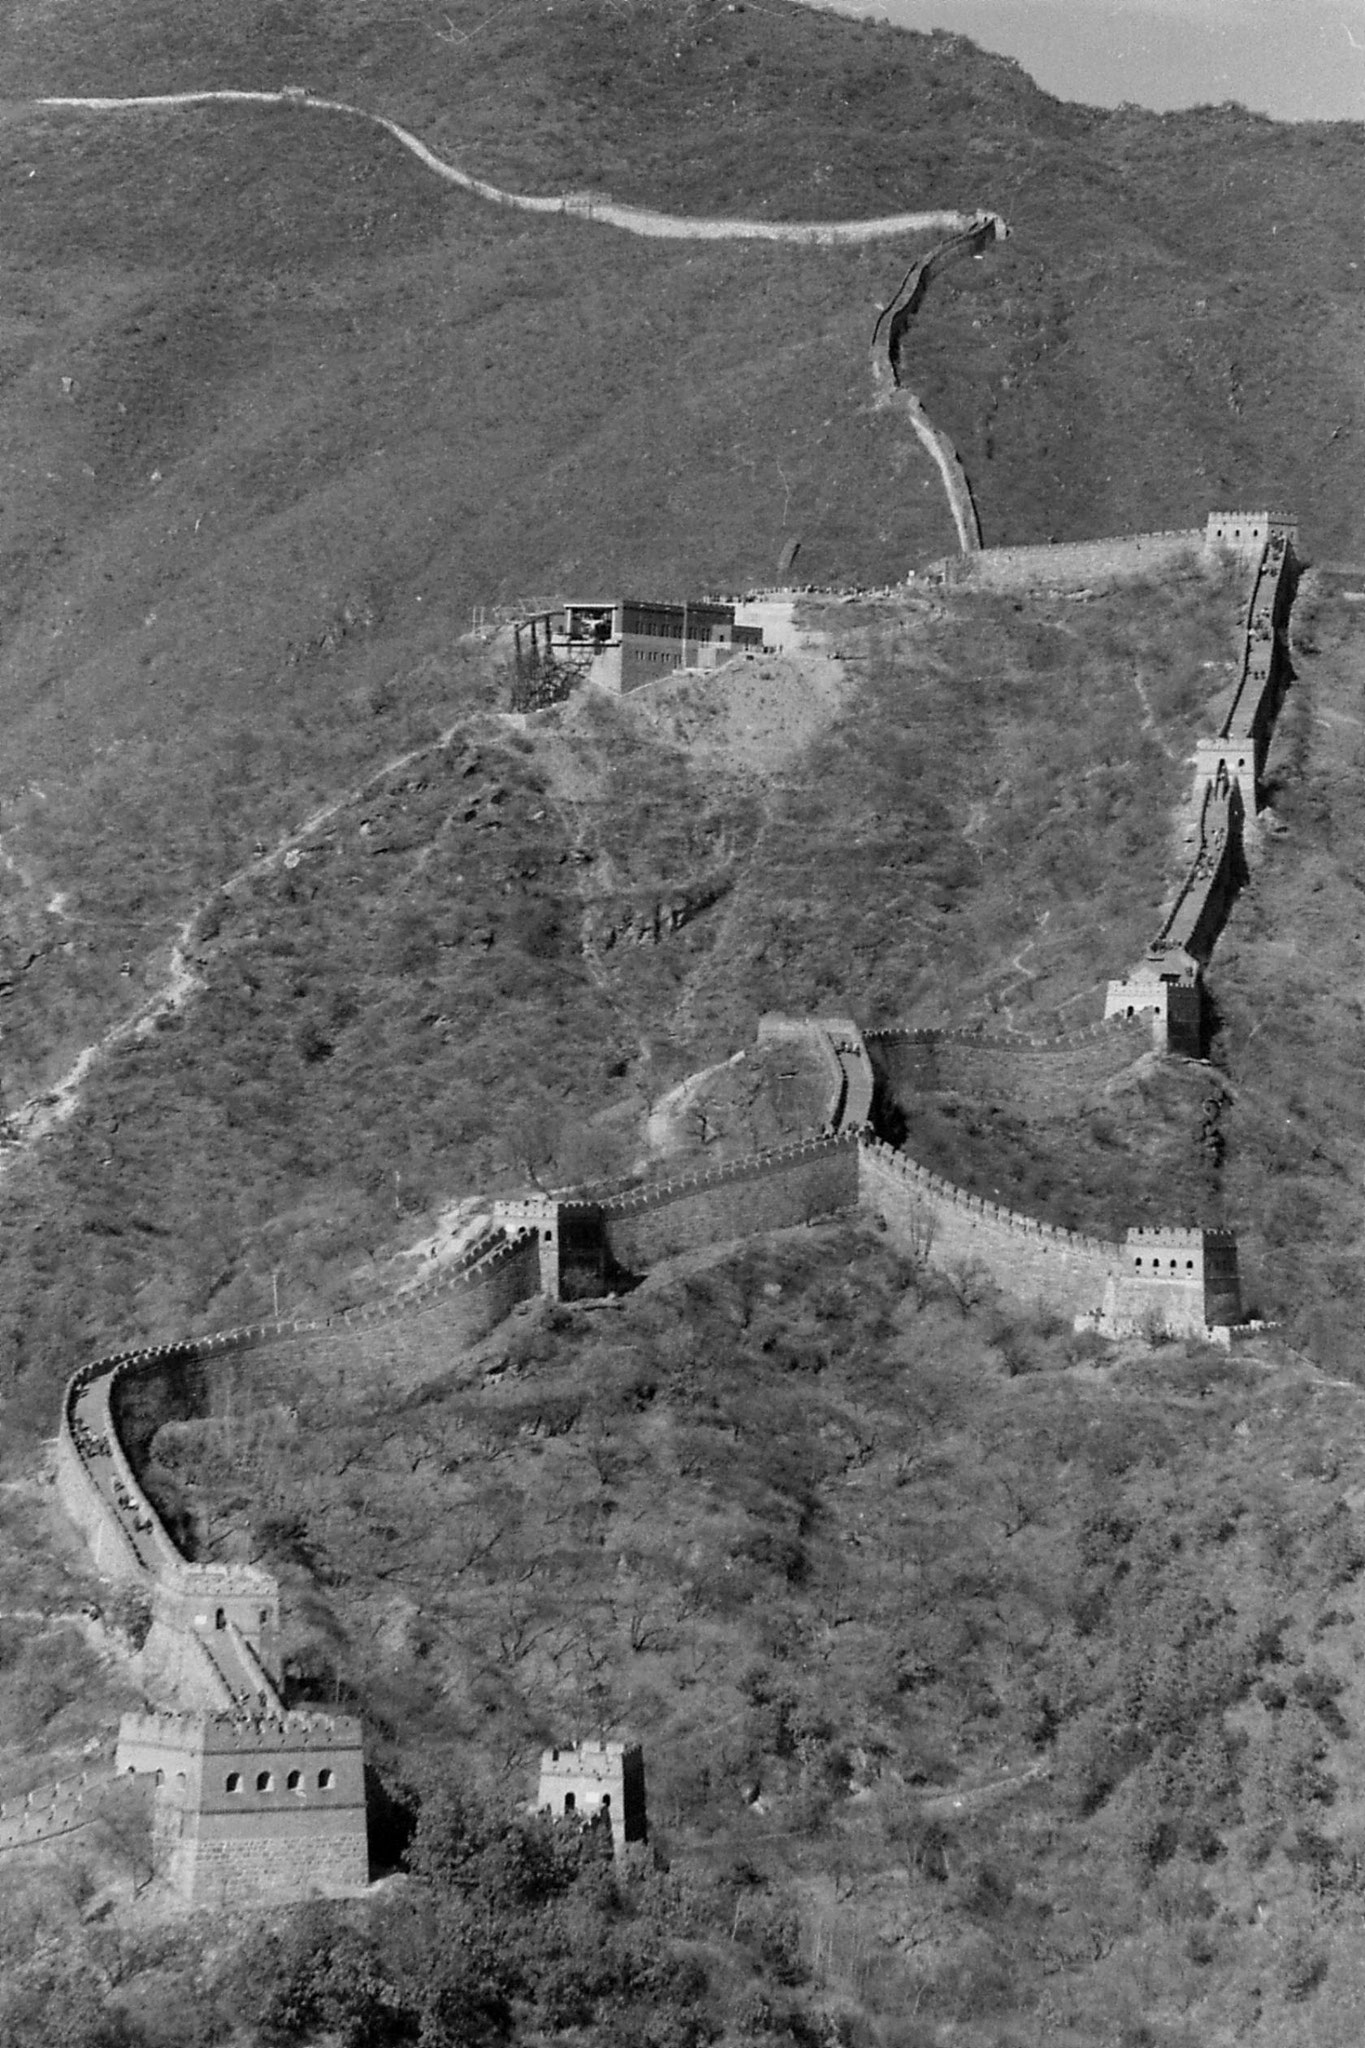 13/11/1988: 12: Great Wall at Mutianyu